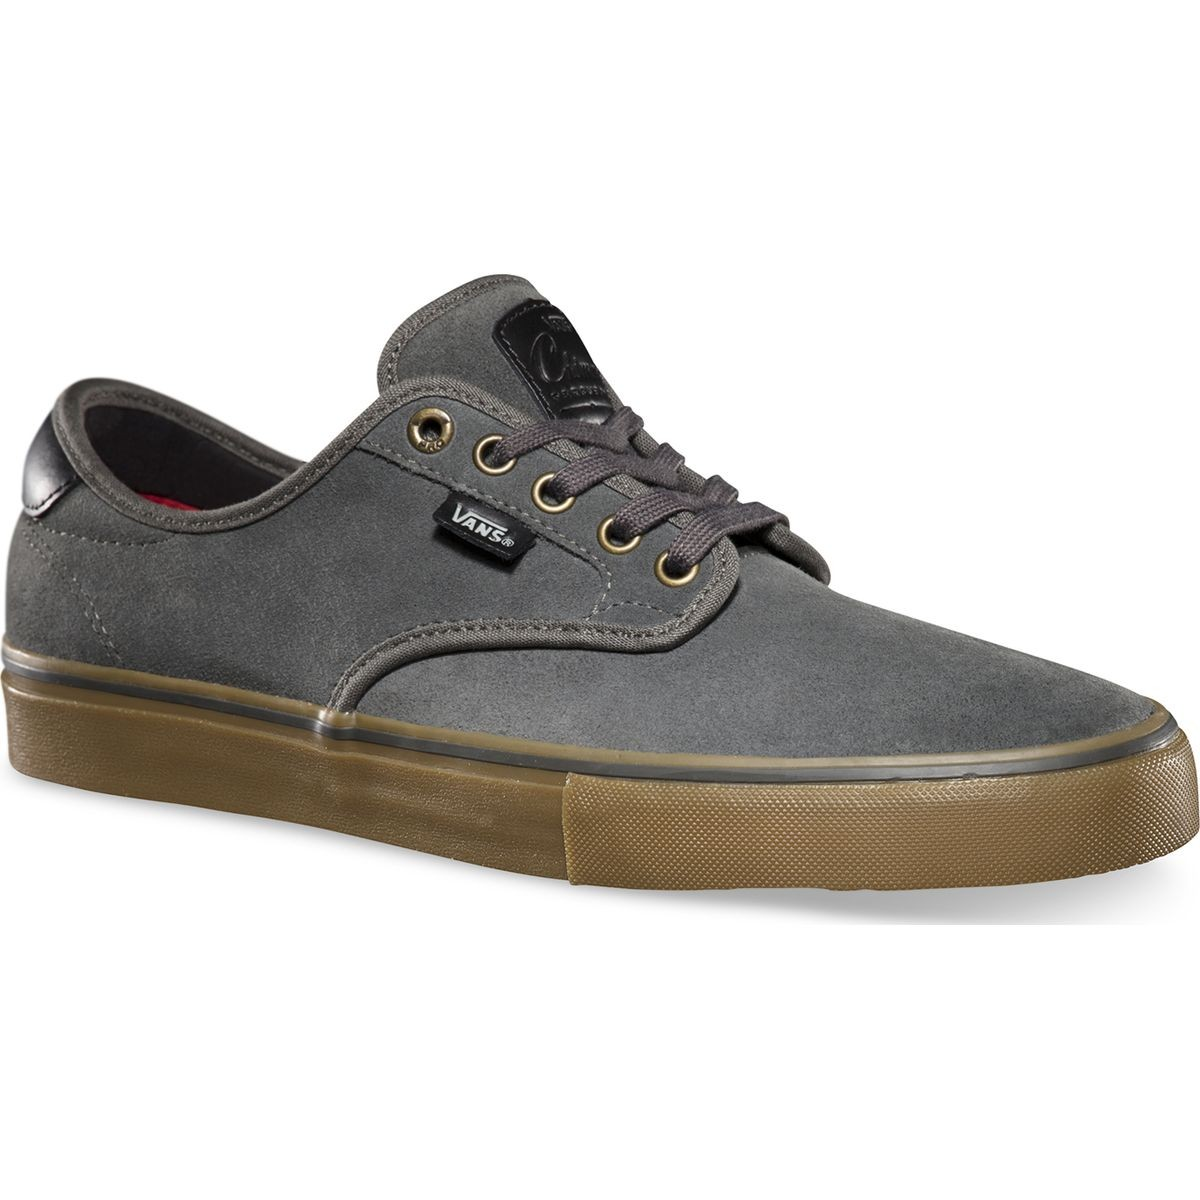 Vans Chima Ferguson Pro Shoes - Charcoal / Gum